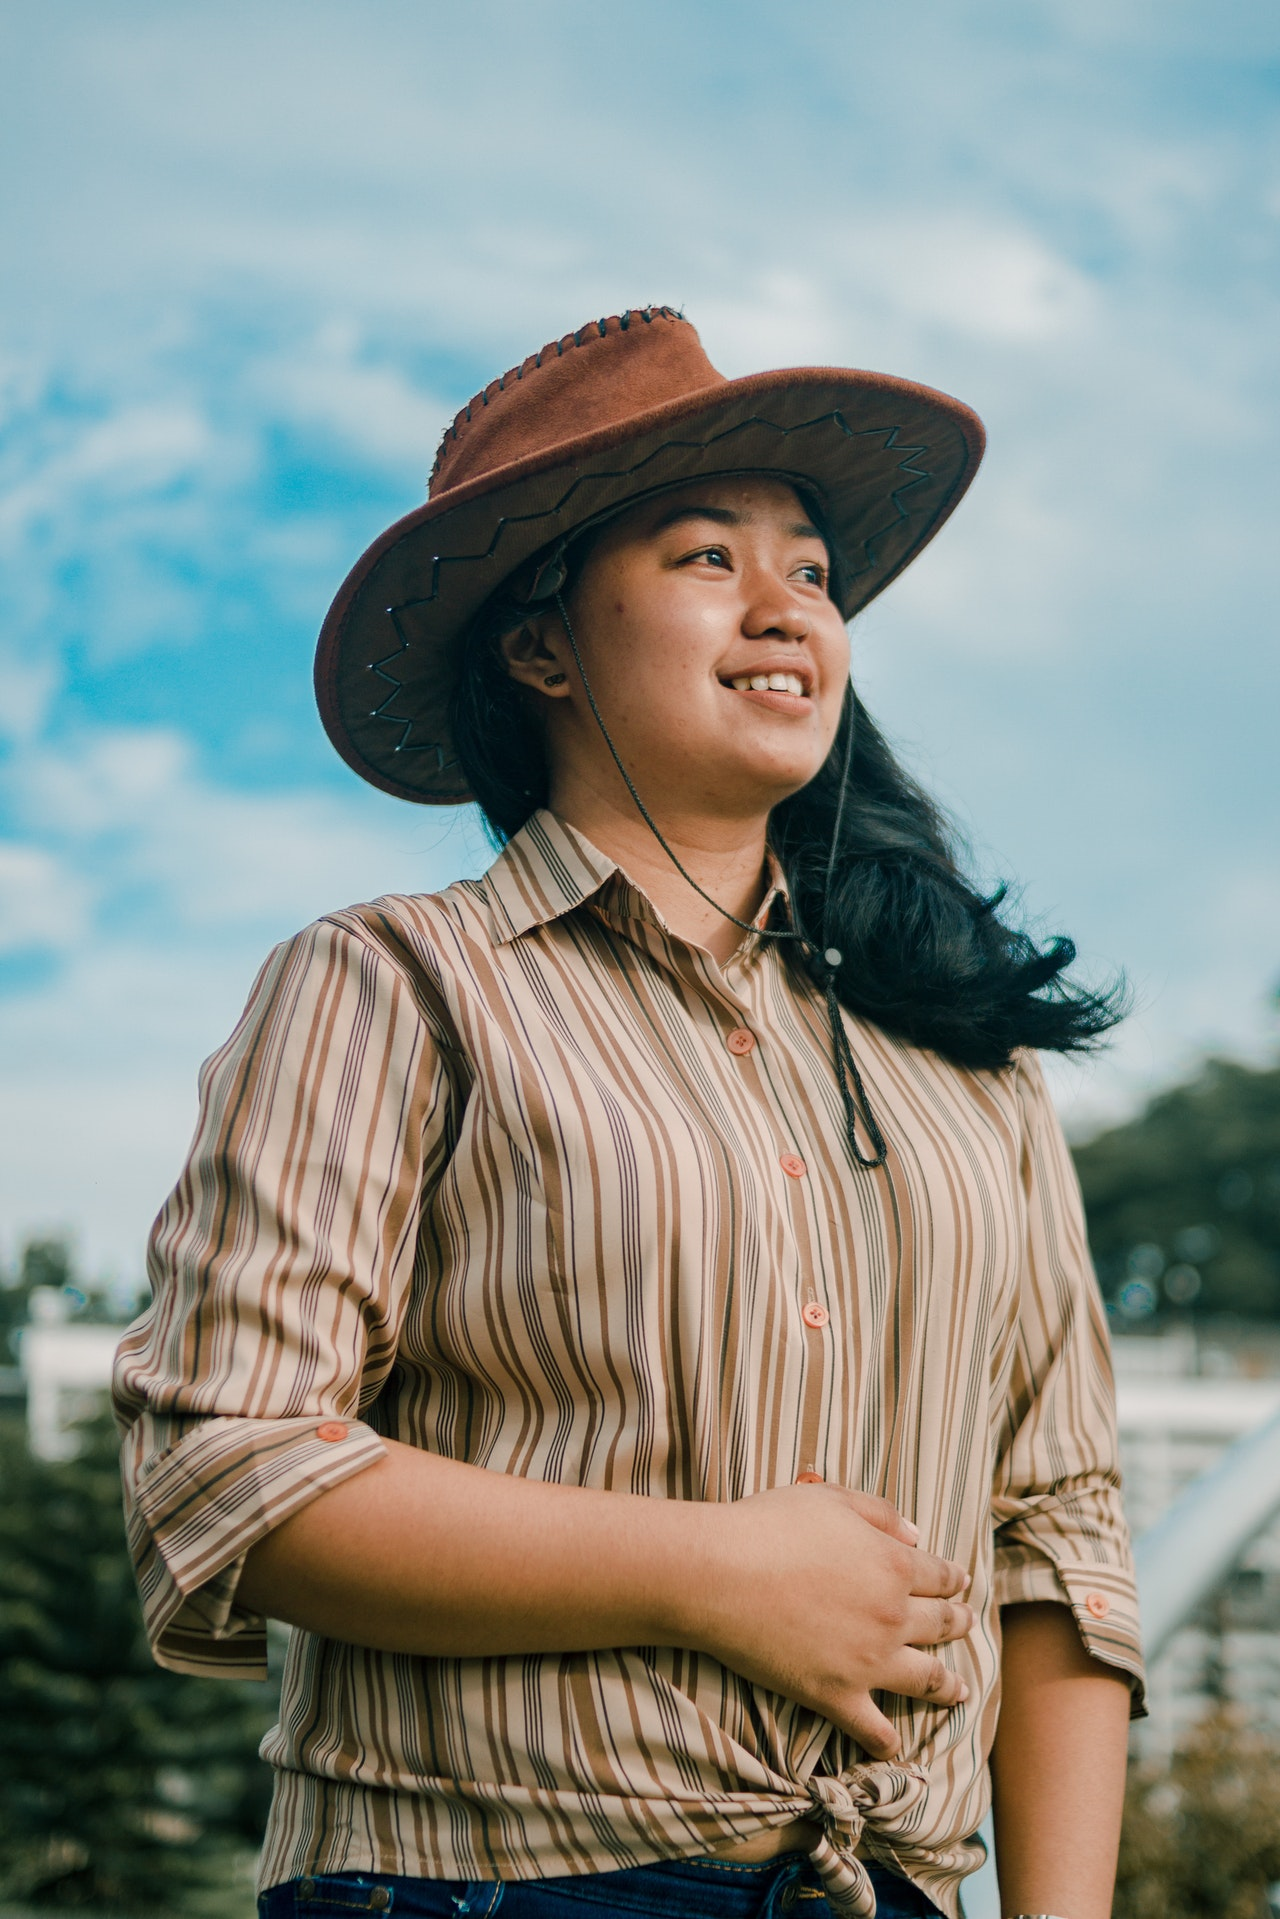 Woman wearing cowboy hat and button down shirt